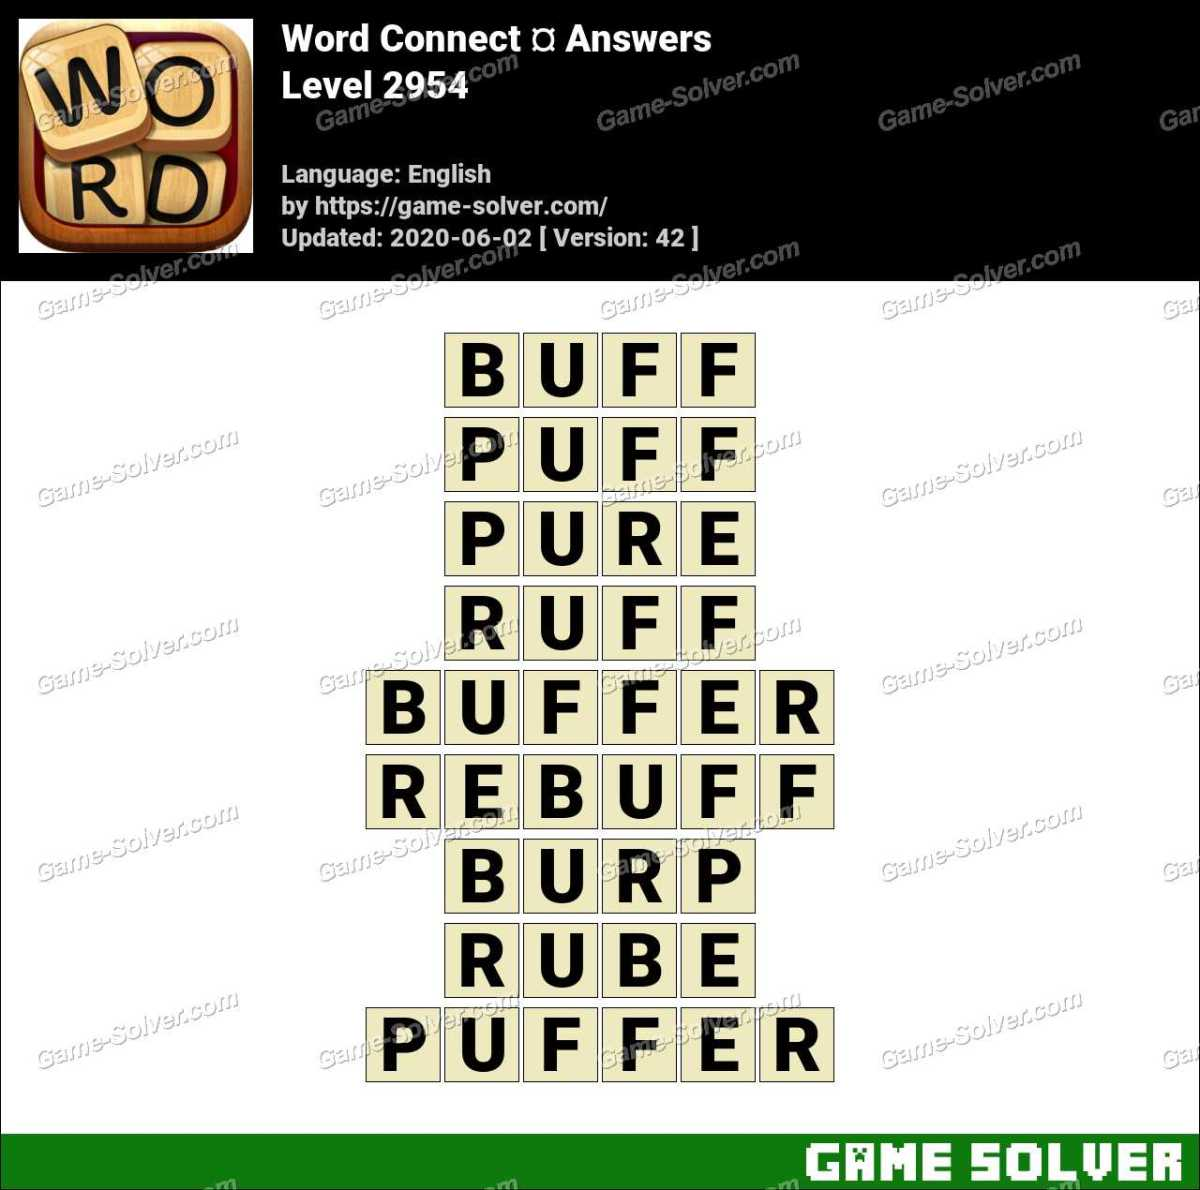 Word Connect Level 2954 Answers